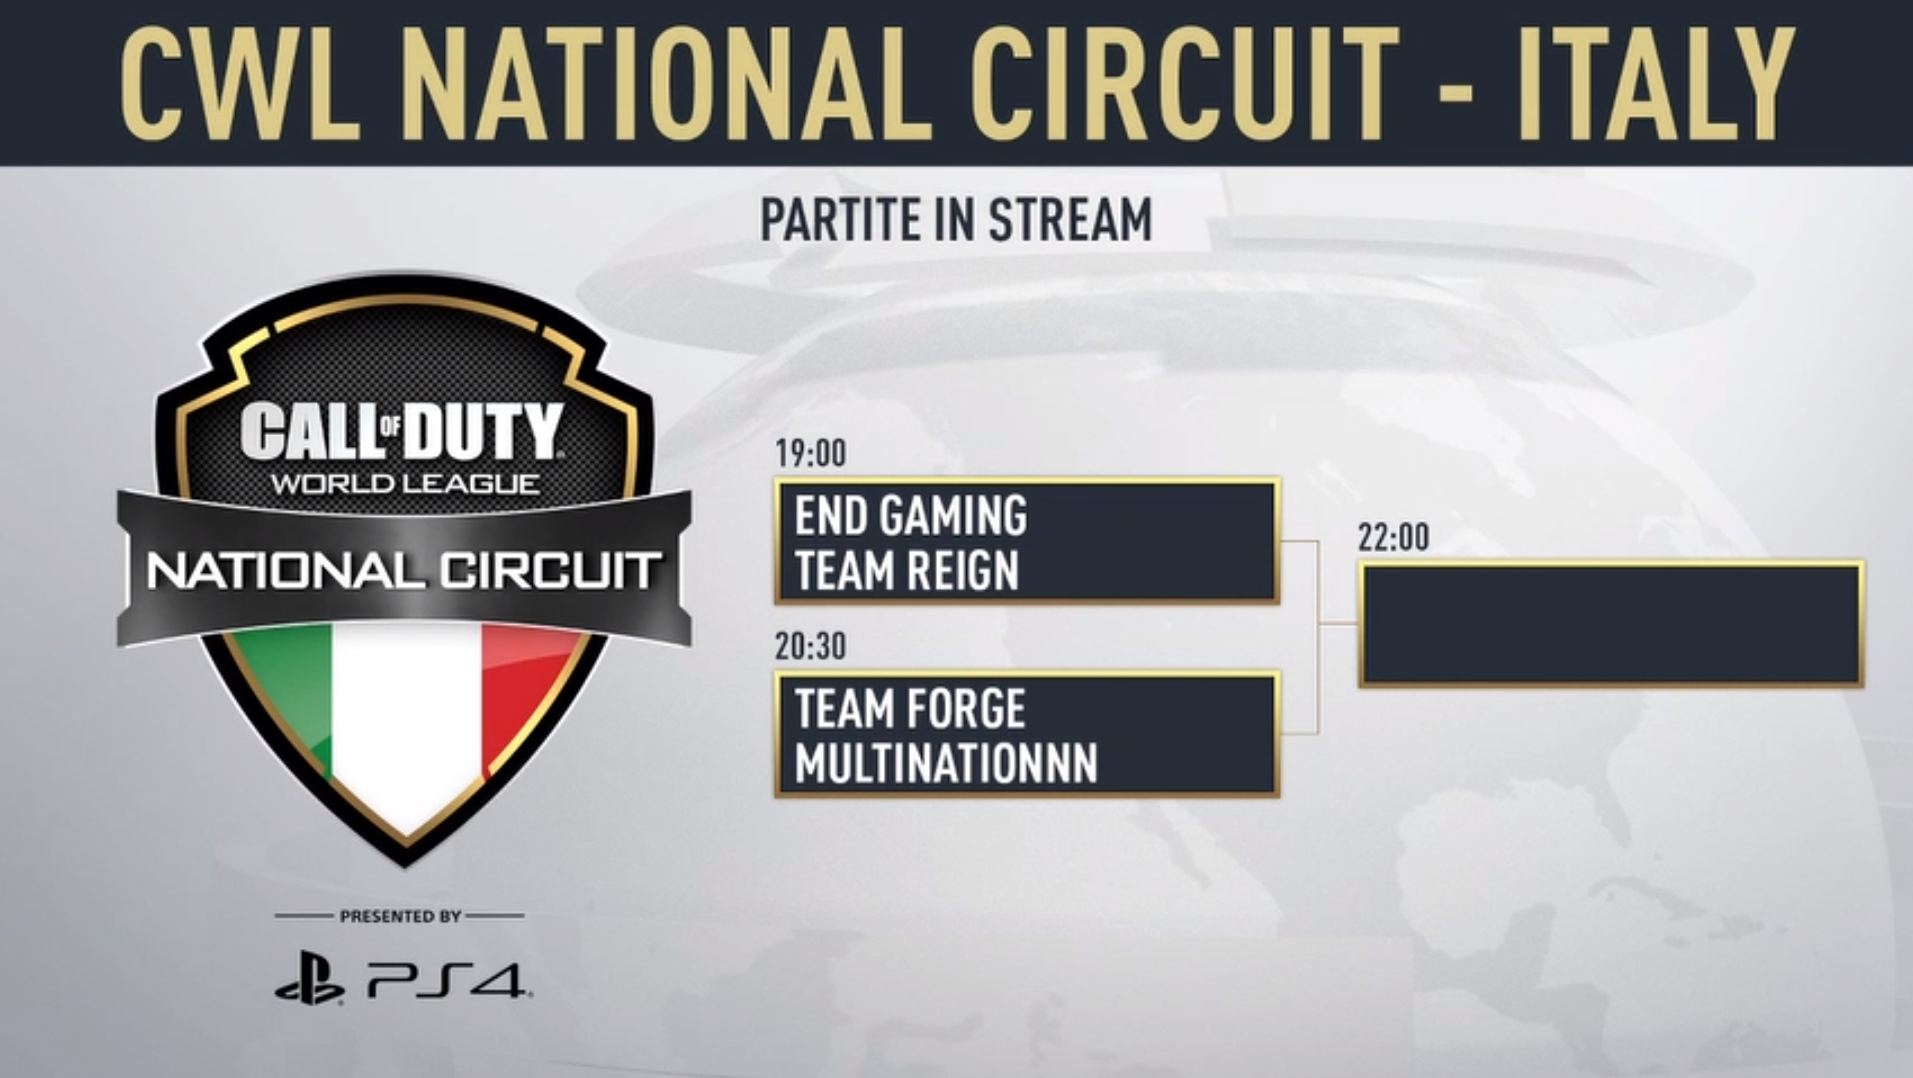 stage 2 del CWL National Circuit italiano